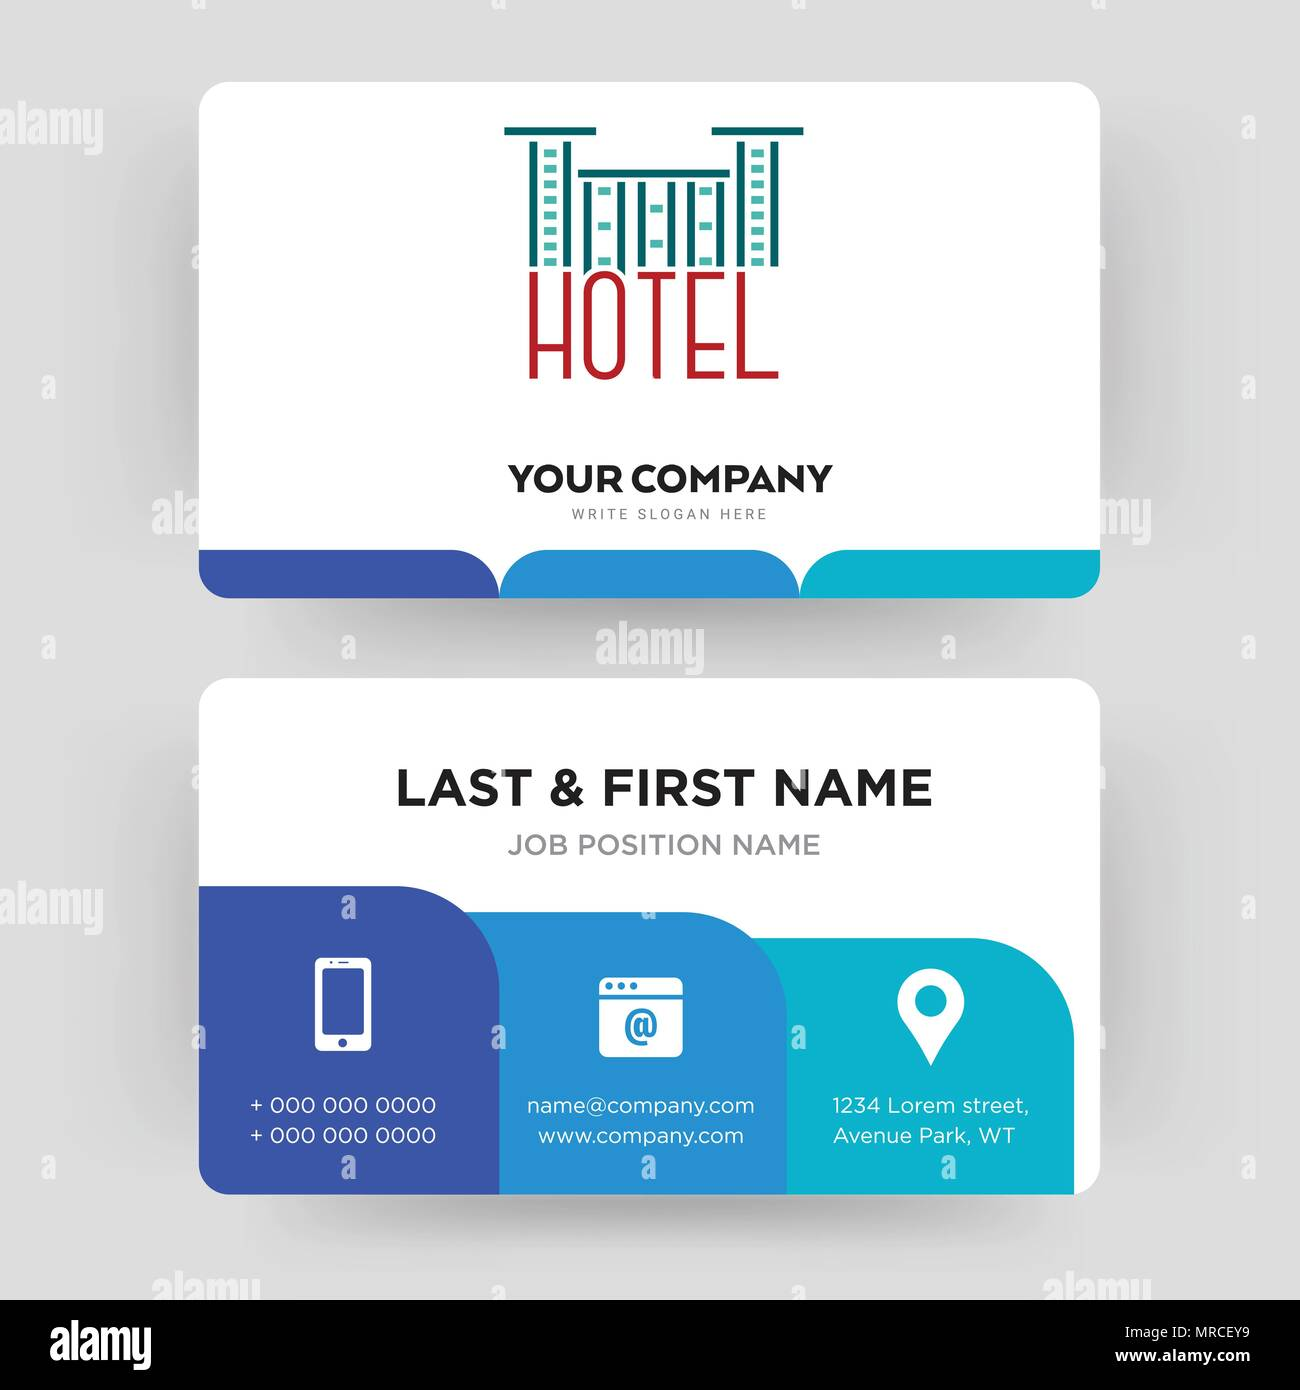 Hotel business card design template visiting for your company hotel business card design template visiting for your company modern creative and clean identity card vector colourmoves